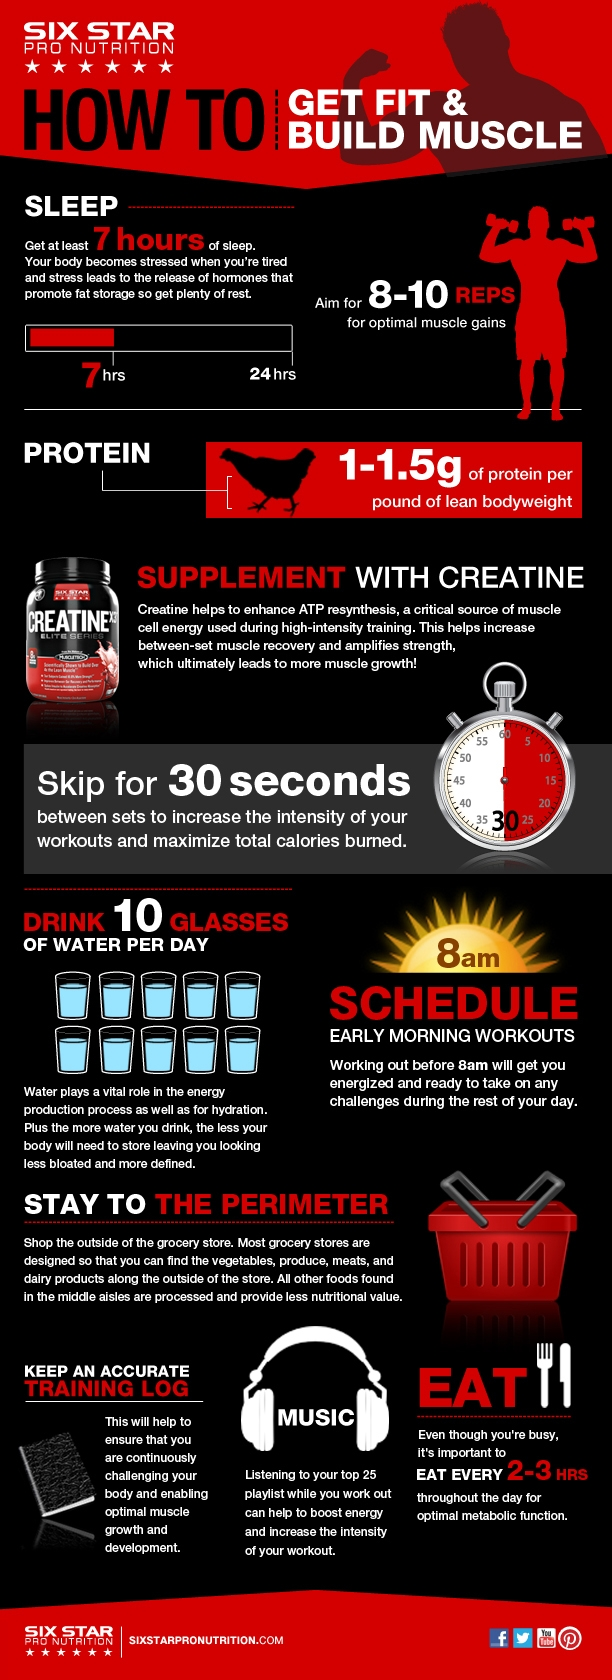 info_get_fit_and_build_muscle